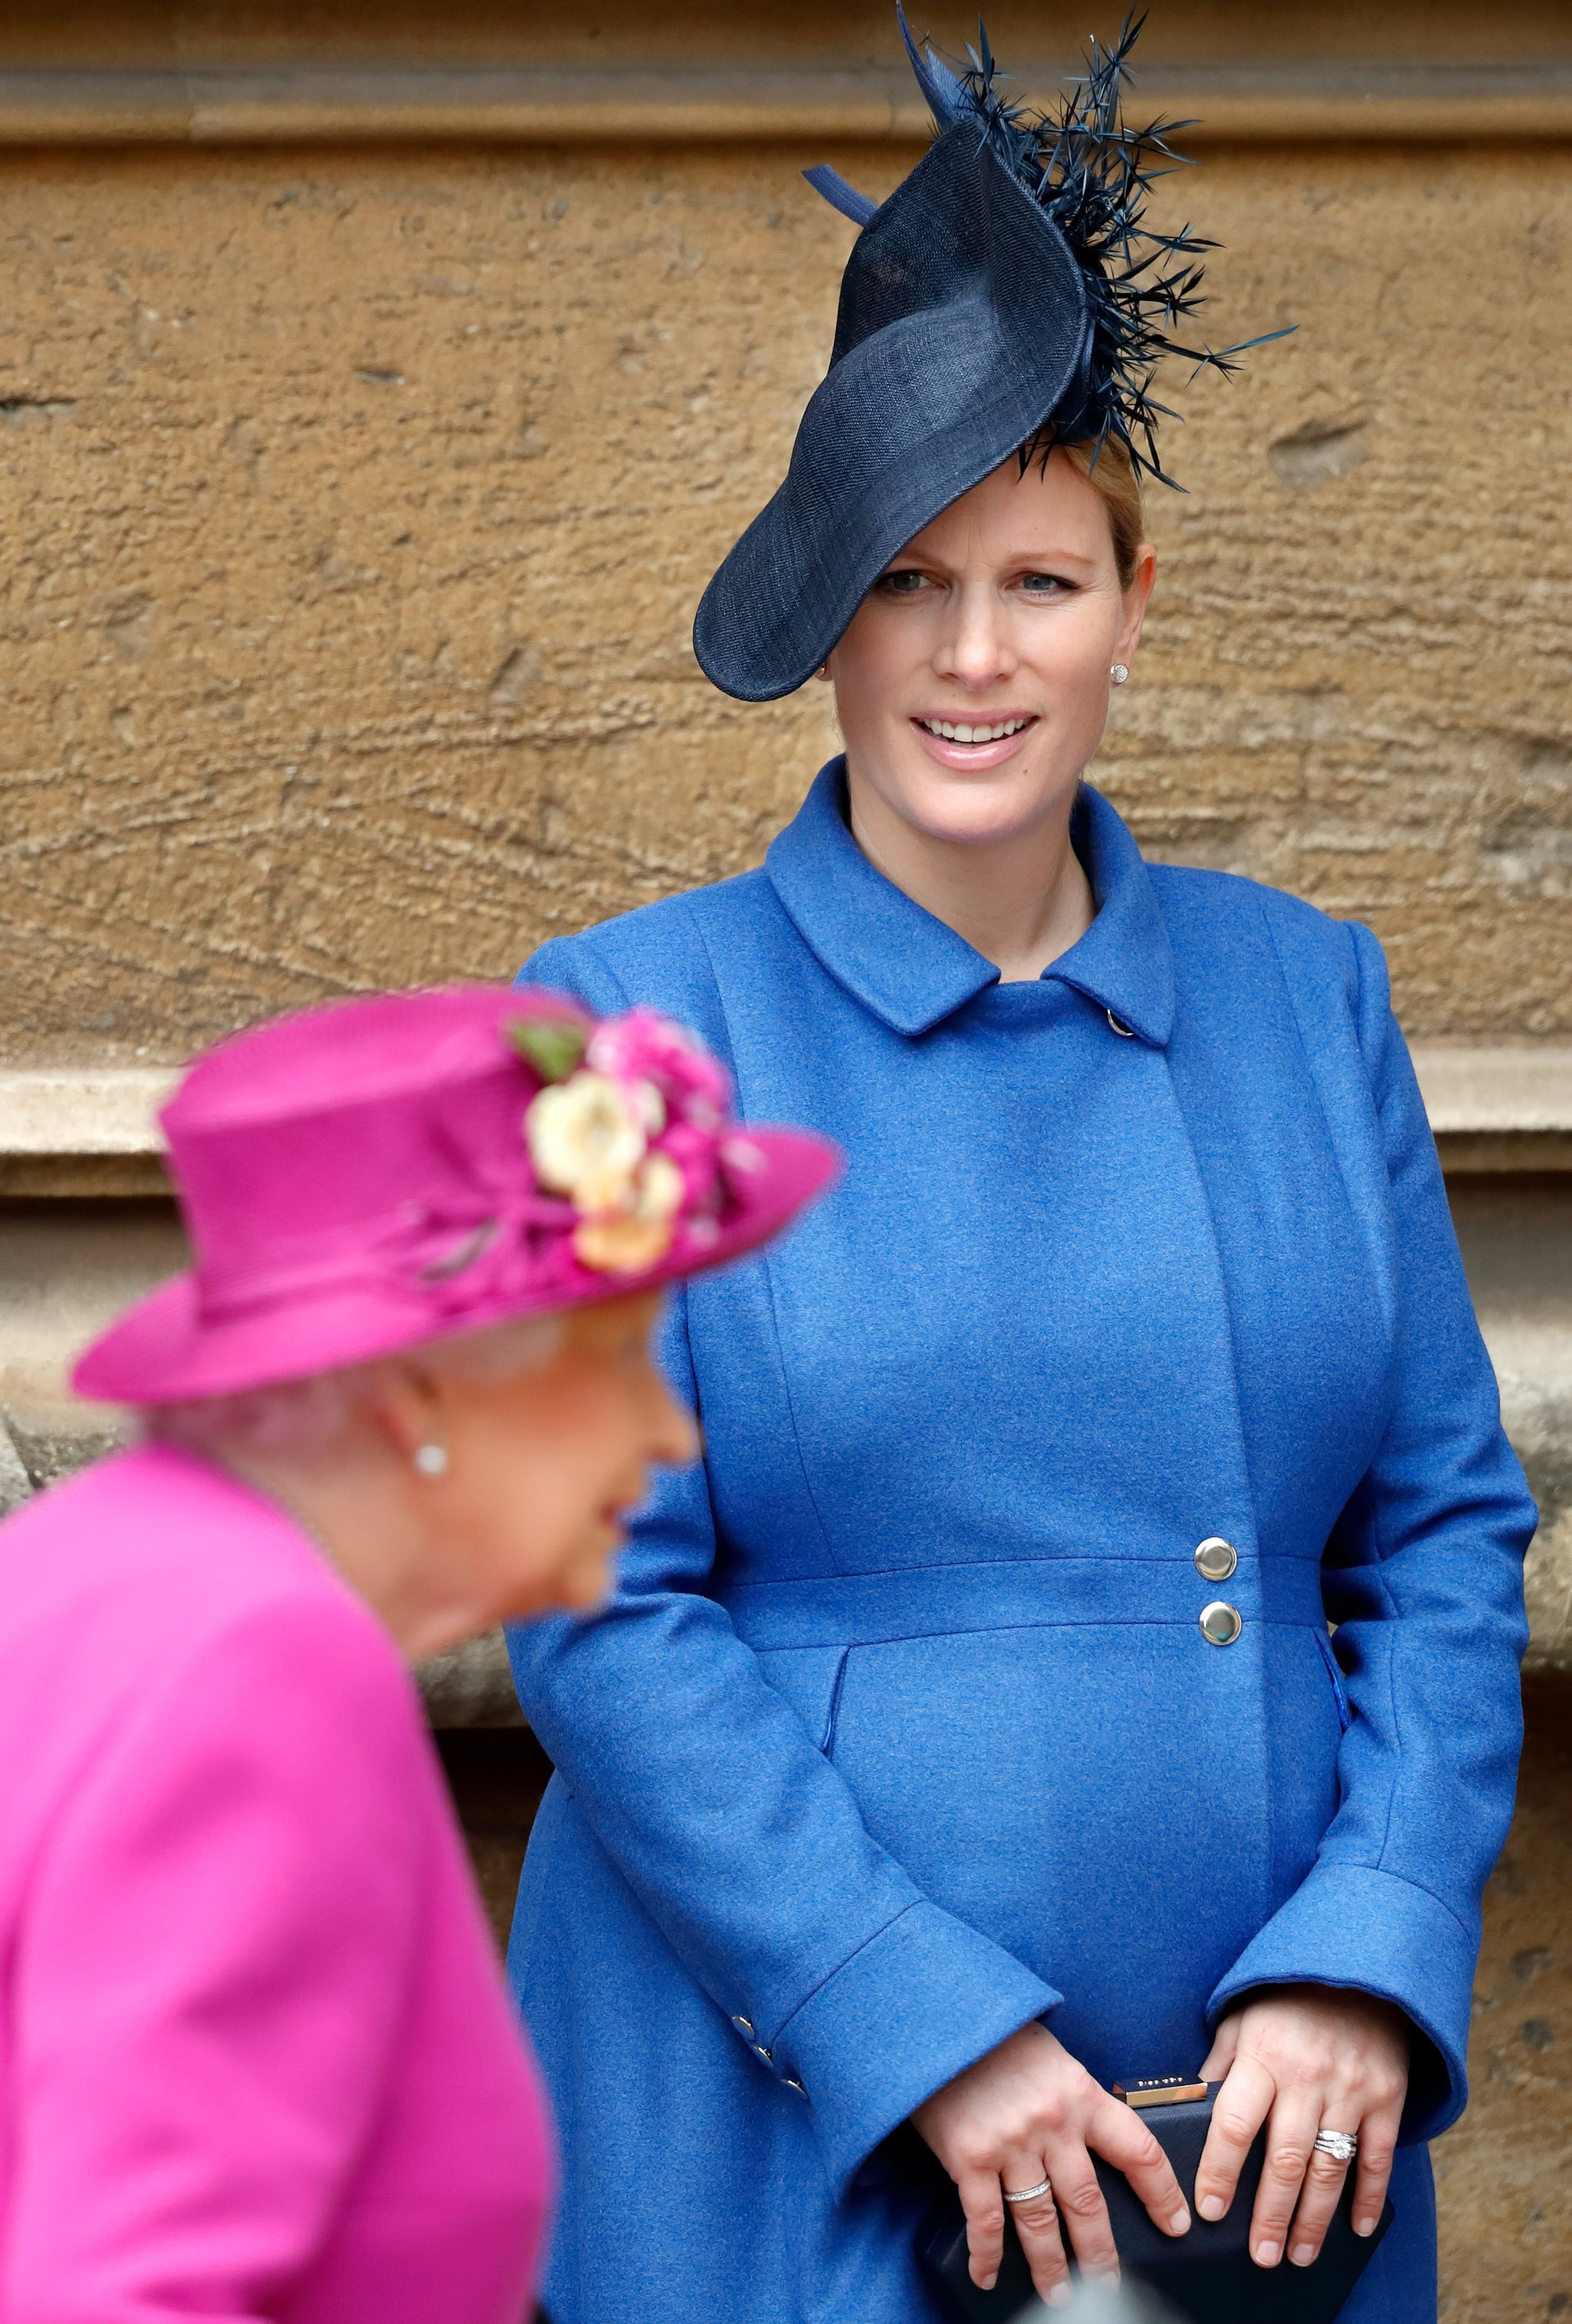 WINDSOR, UNITED KINGDOM - APRIL 01: (EMBARGOED FOR PUBLICATION IN UK NEWSPAPERS UNTIL 24 HOURS AFTER CREATE DATE AND TIME) Queen Elizabeth II and Zara Tindall attend the traditional Easter Sunday church service at St George's Chapel, Windsor Castle on April 1, 2018 in Windsor, England. (Photo by Max Mumby/Indigo/Getty Images)